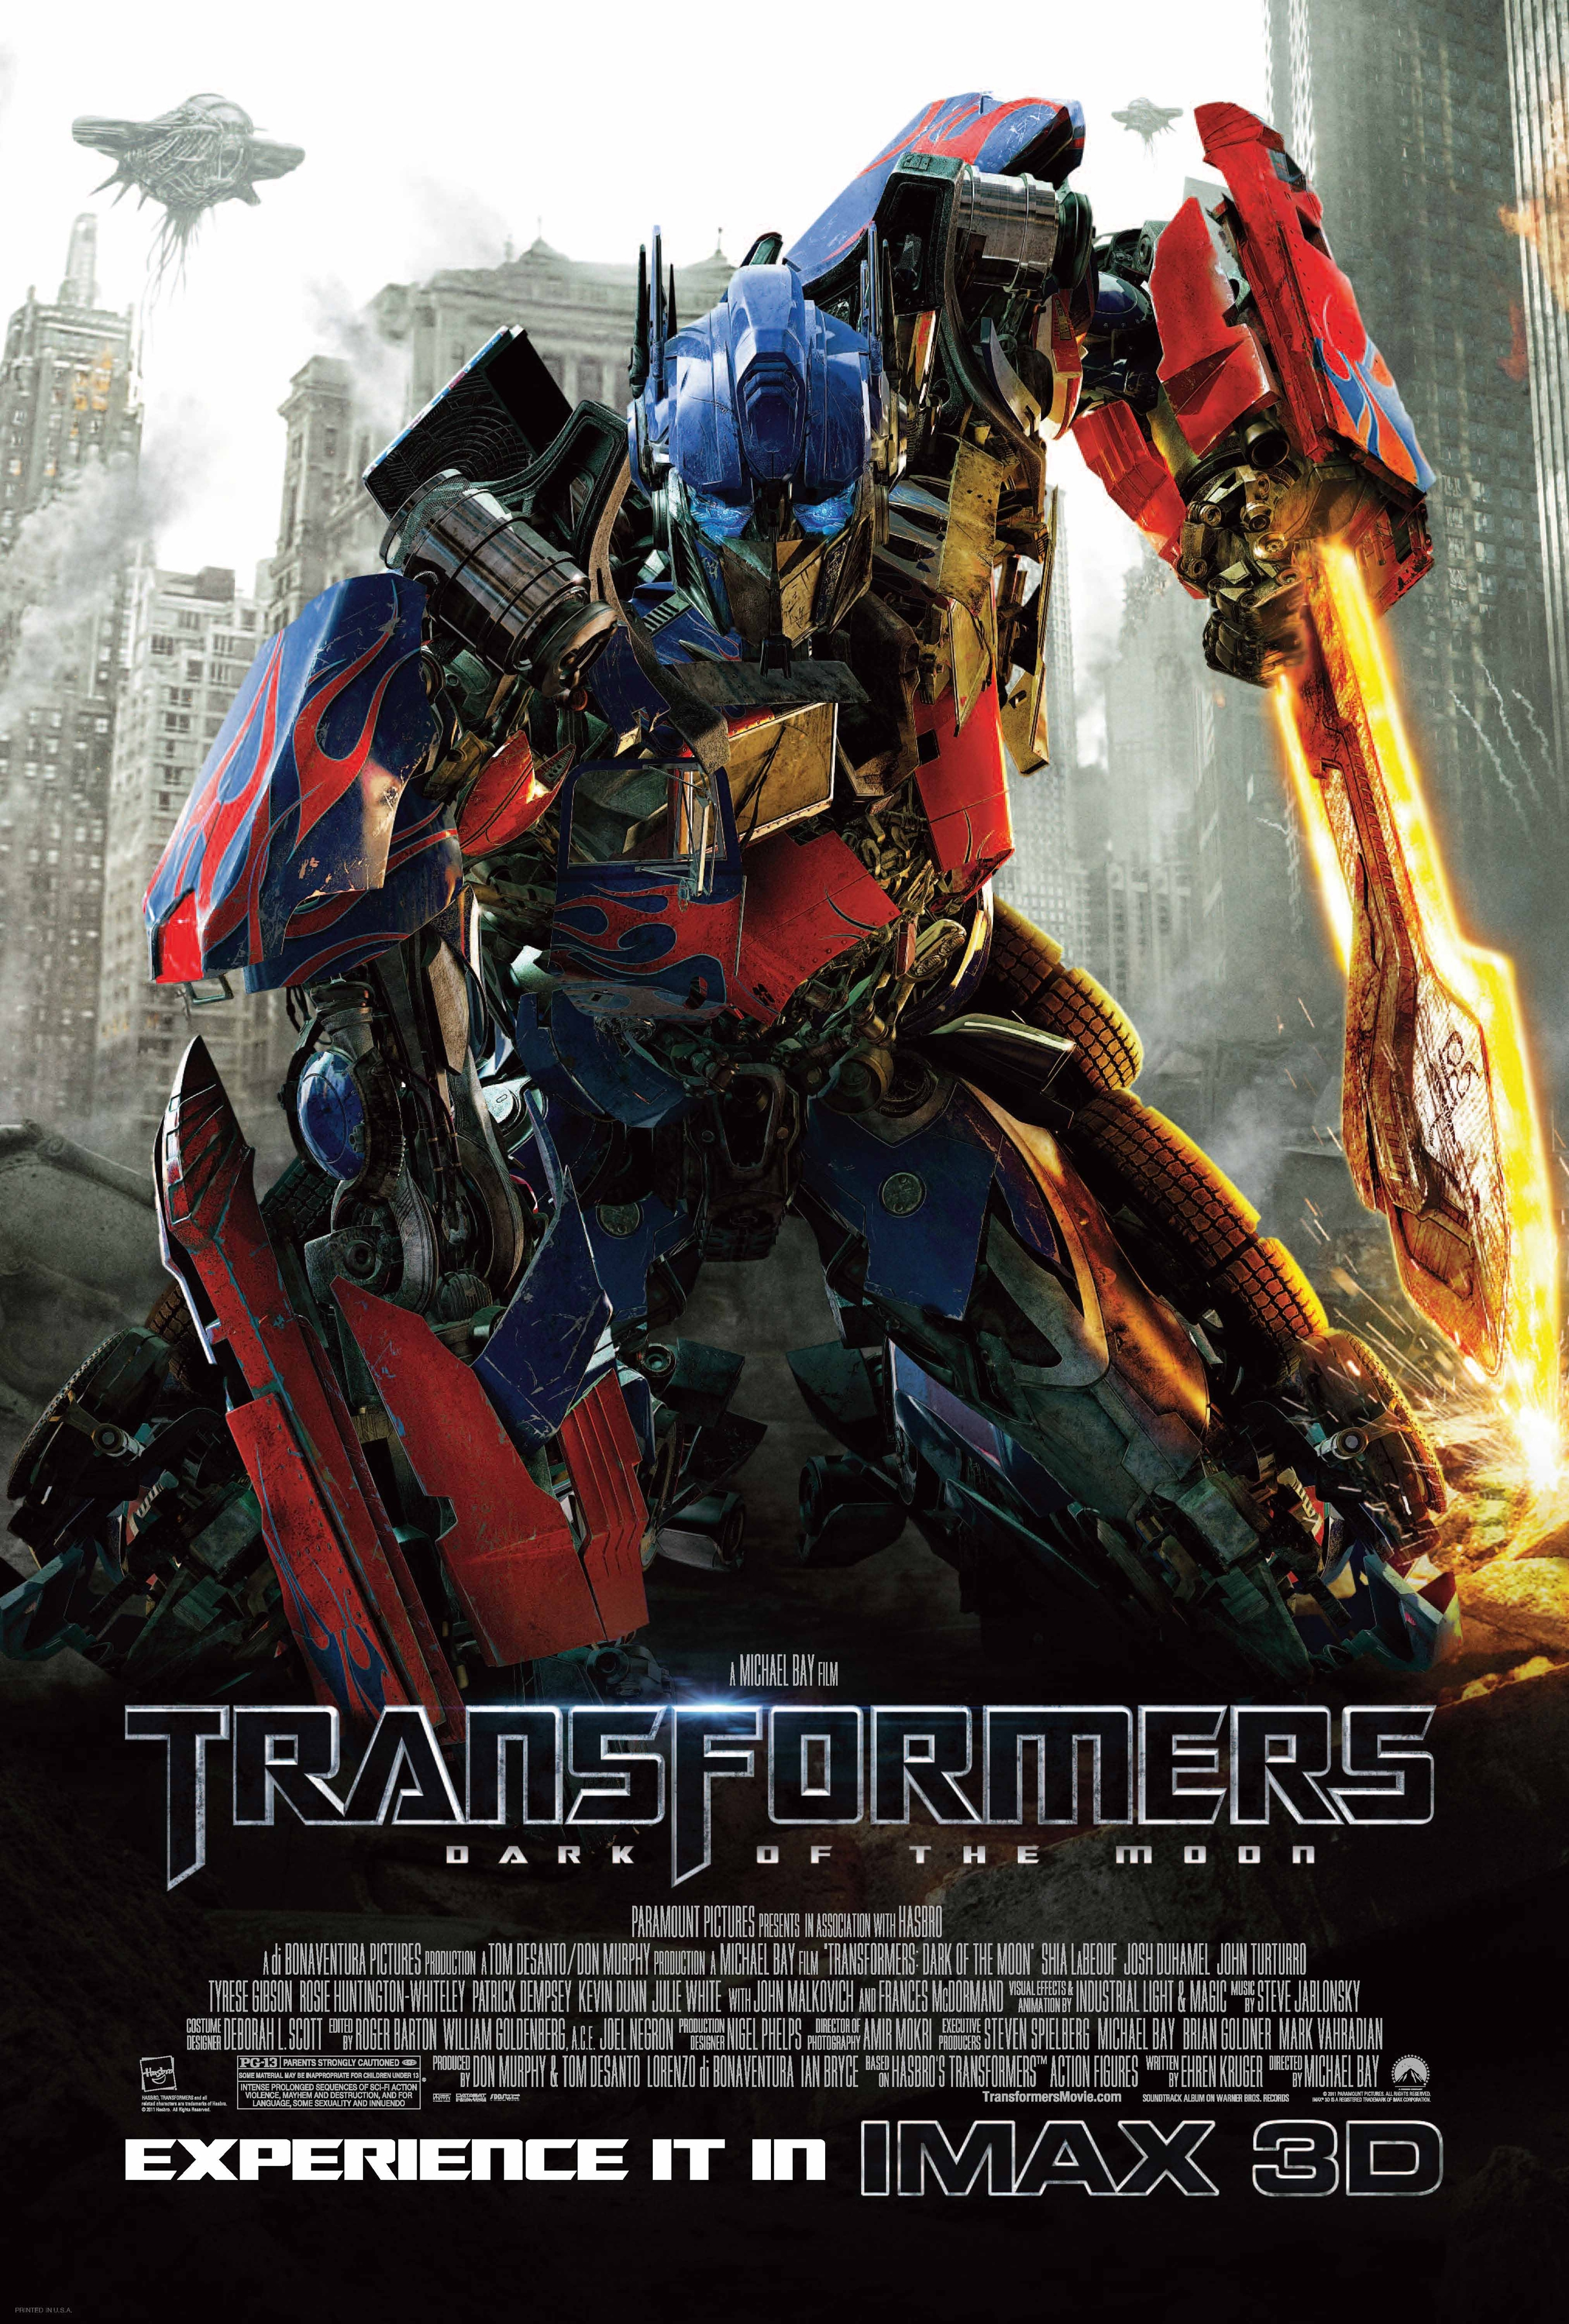 Transformers 3 Transformers Dark of the -Transformers 3 Transformers Dark of the Moon IMAX Poster One-Sheet-6